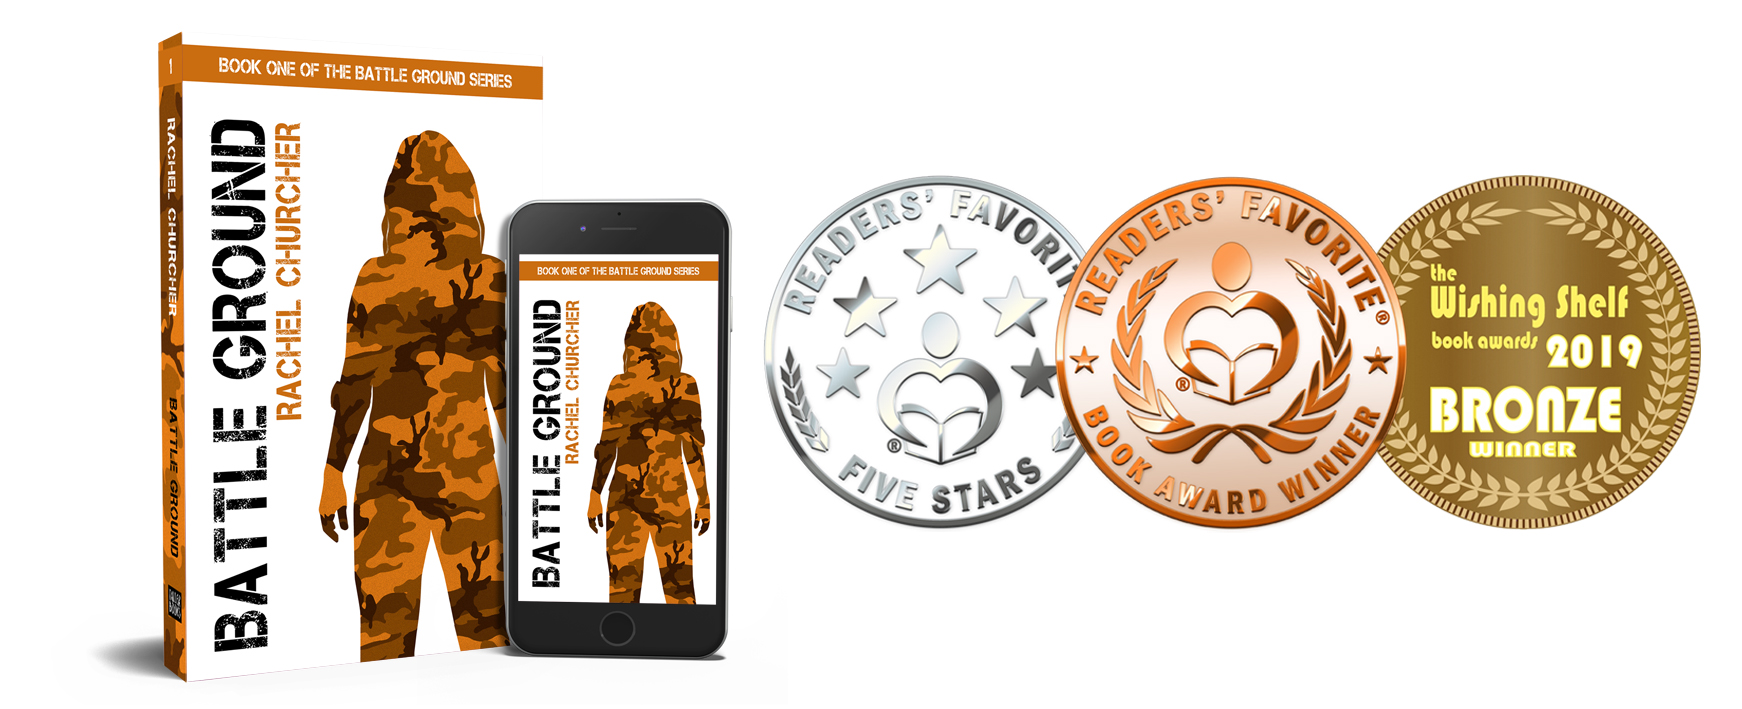 Battle Ground paperback and Kindle editions with three medals